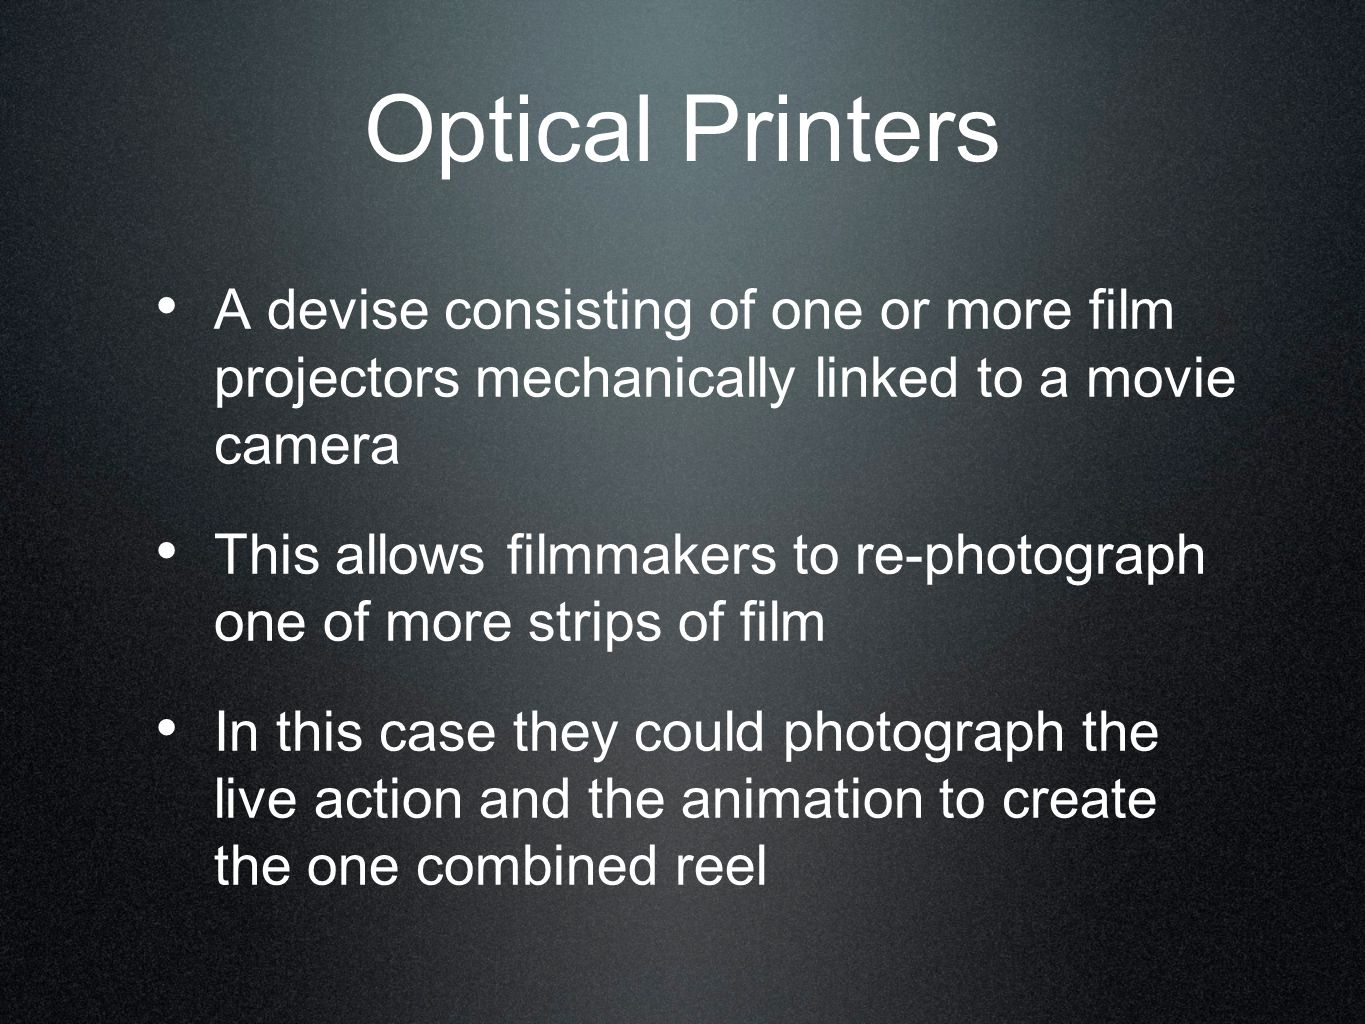 Optical Printers A devise consisting of one or more film projectors mechanically linked to a movie camera.